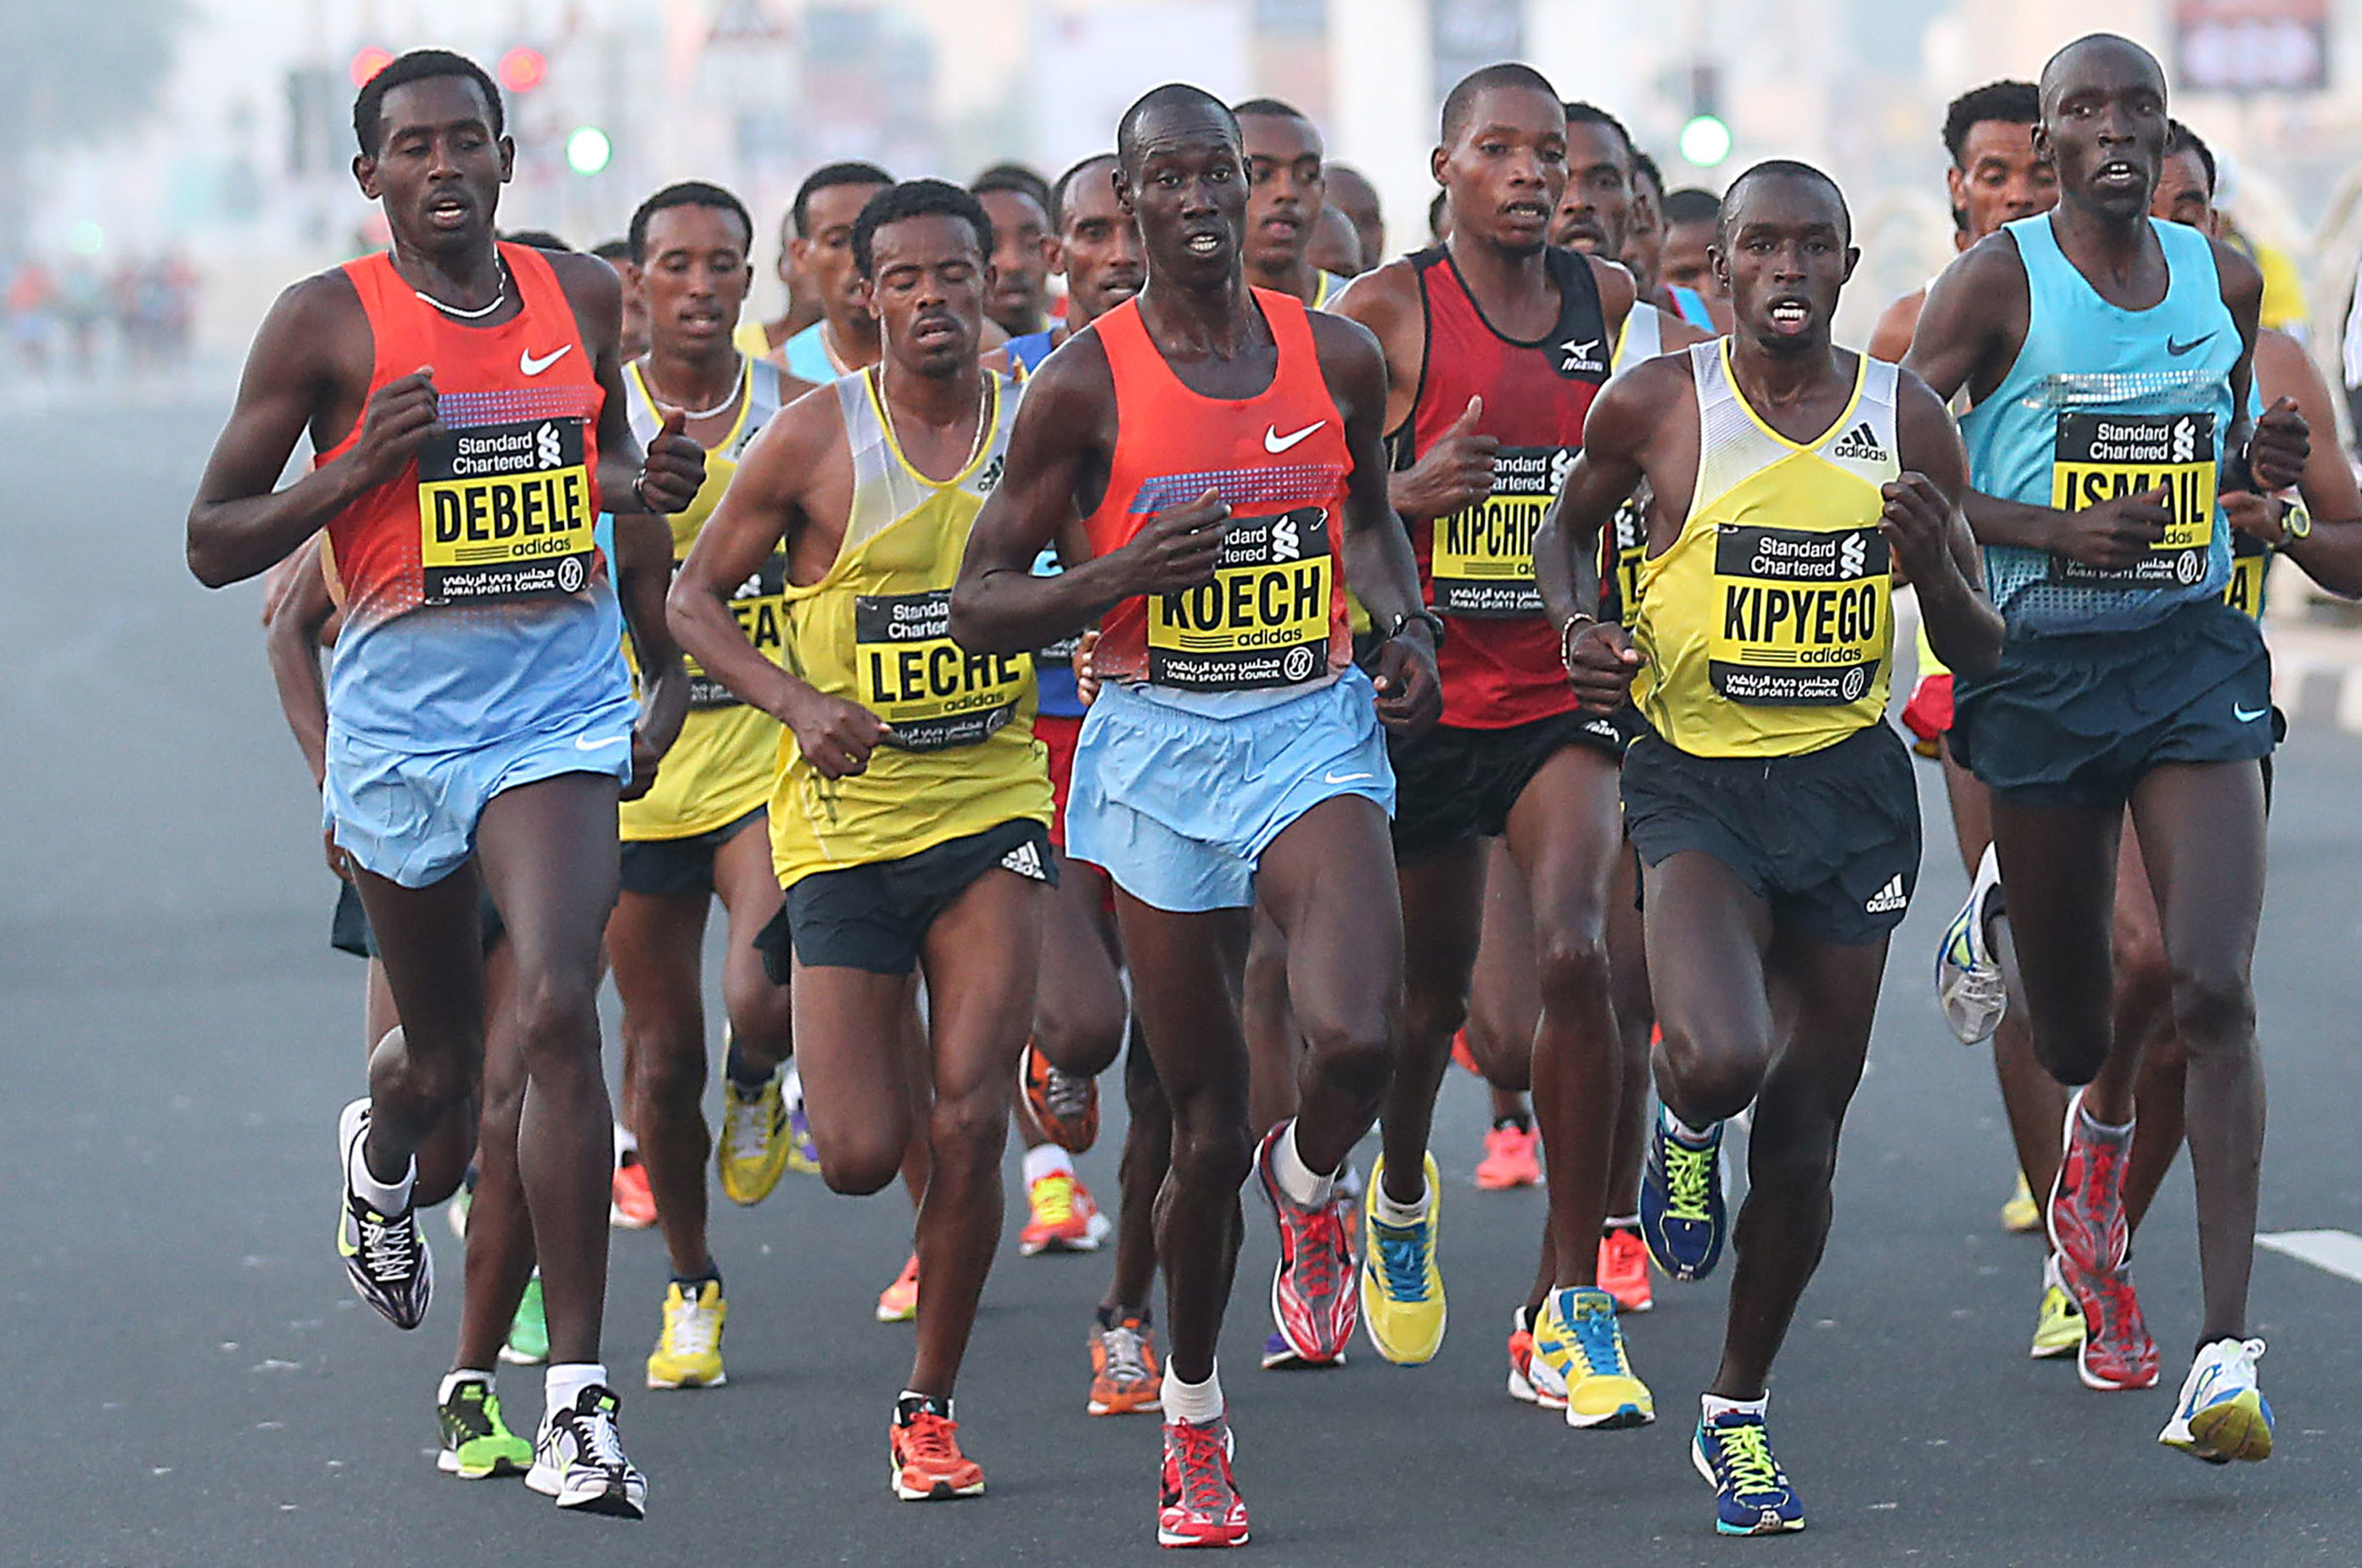 Kenyan runners call for Athletics Kenya to provide services to help athletes